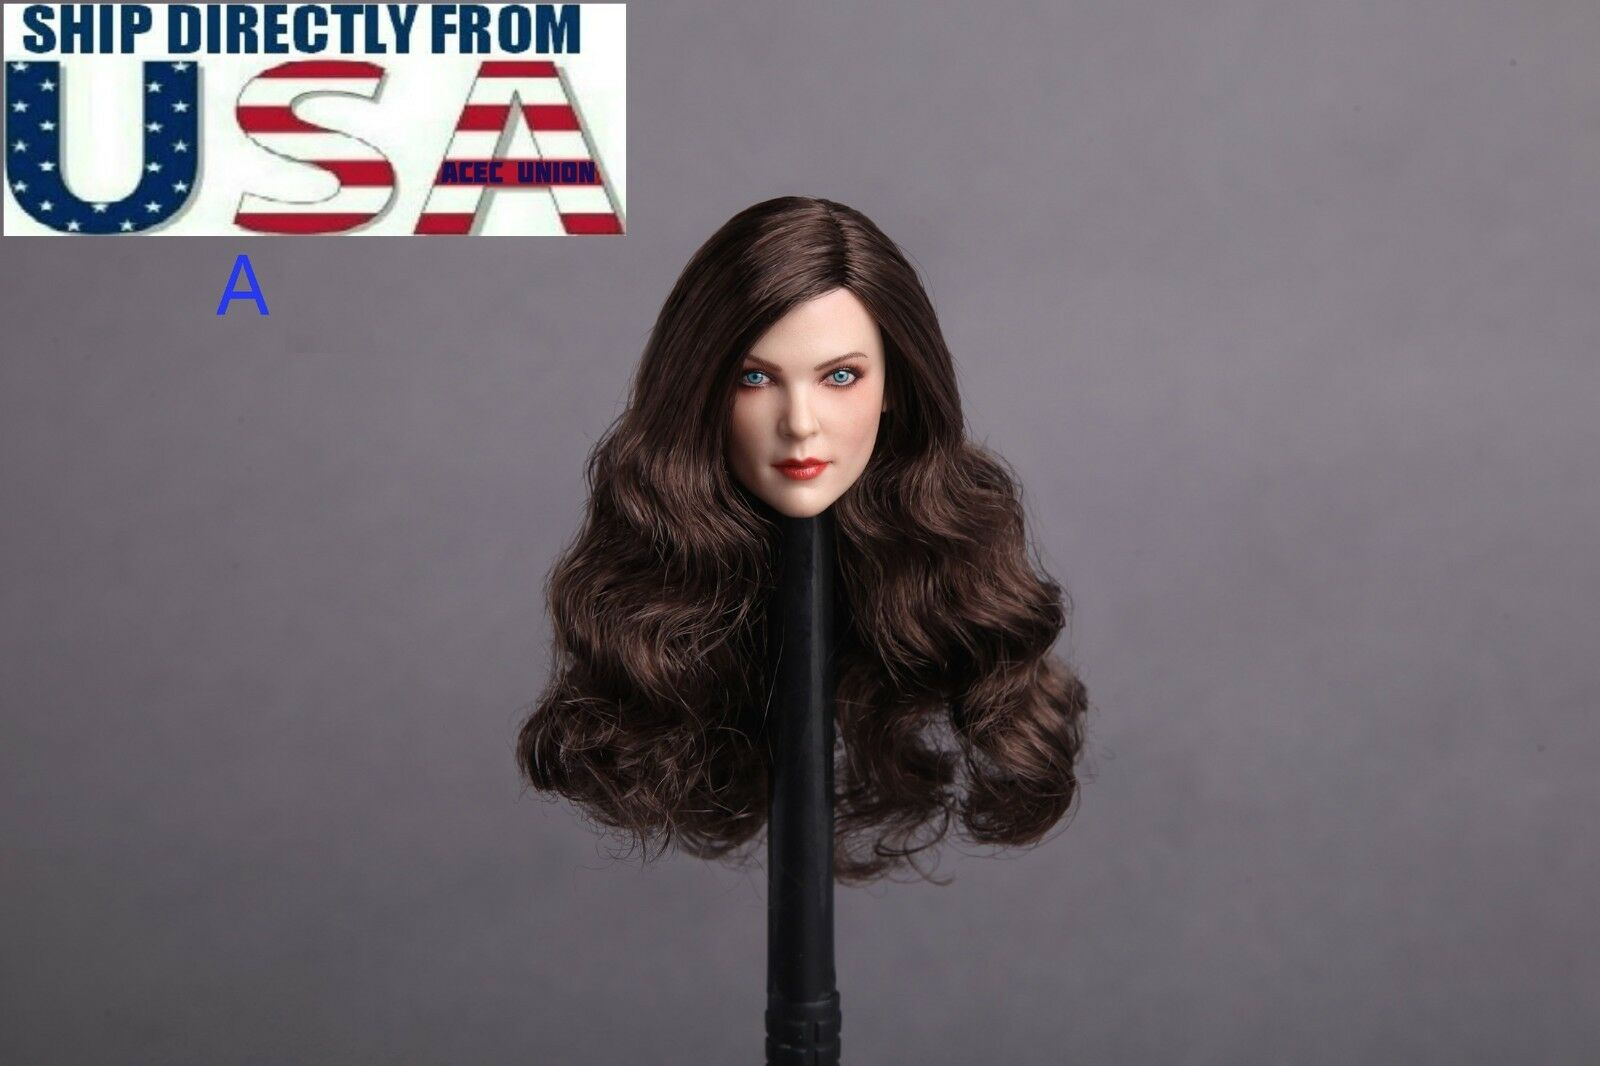 1 6 American Female Head Sculpt A BROWN BROWN BROWN Hair For PHICEN Hot Toys Figure U.S.A. 45b3a1